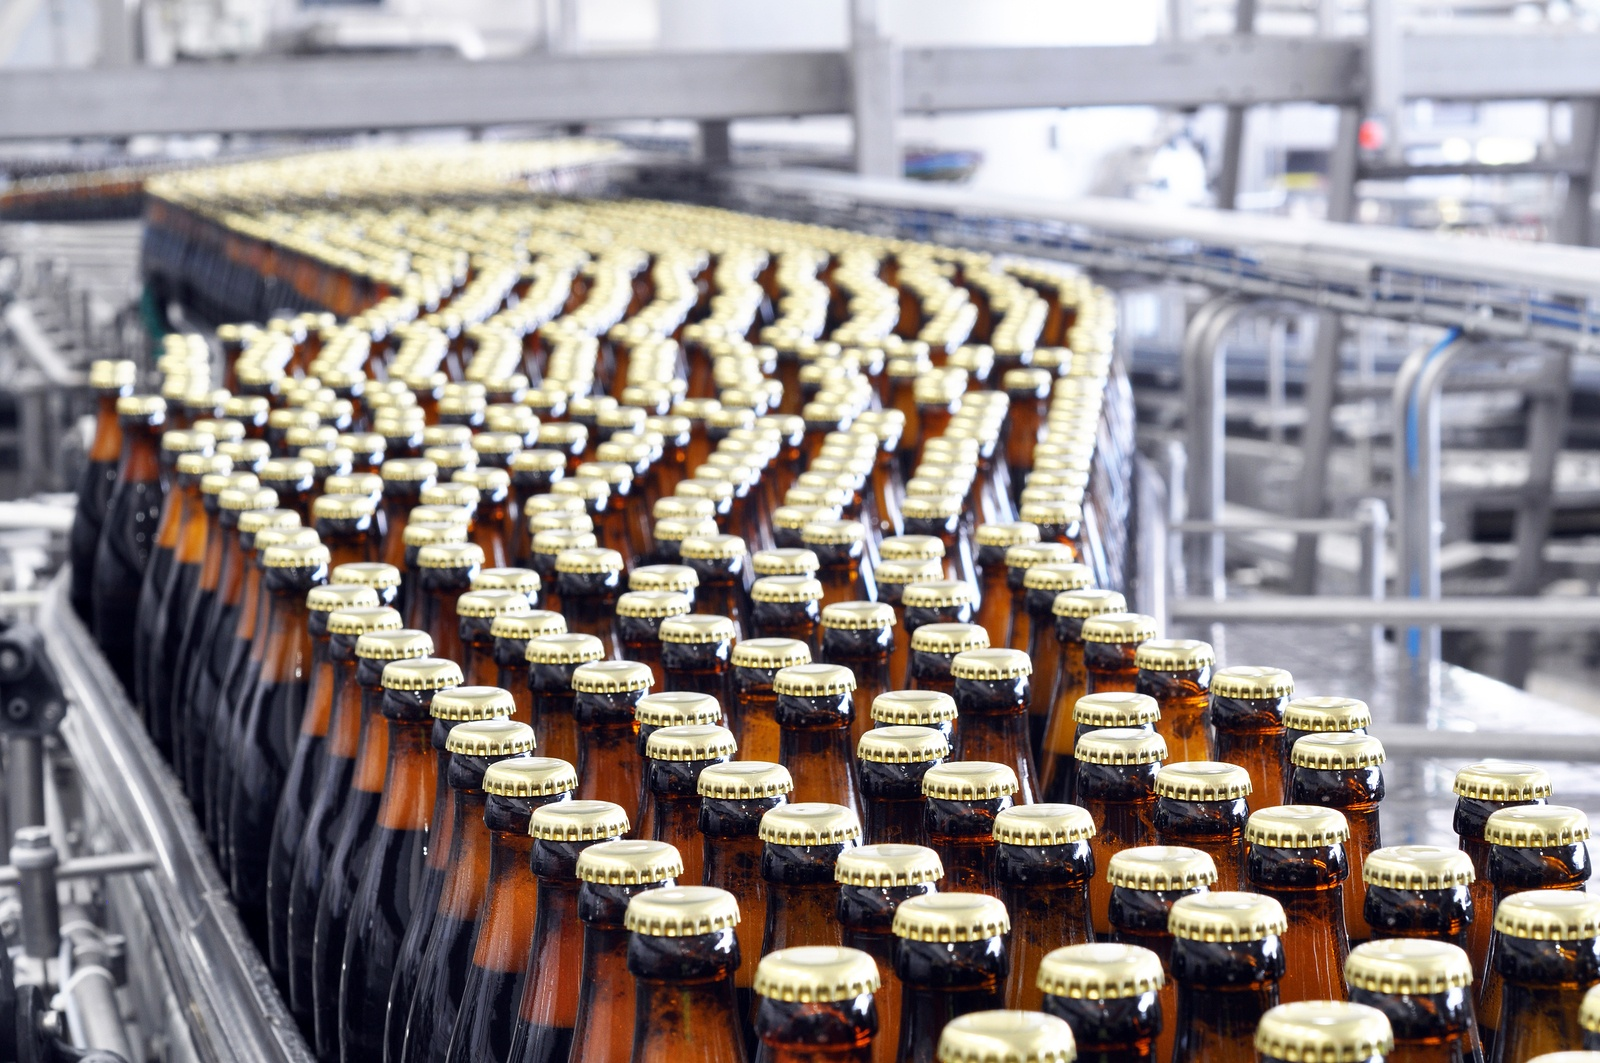 Bigstock  125354308 - Fermentation In A Brewery - Tanks With Beer For Brewing